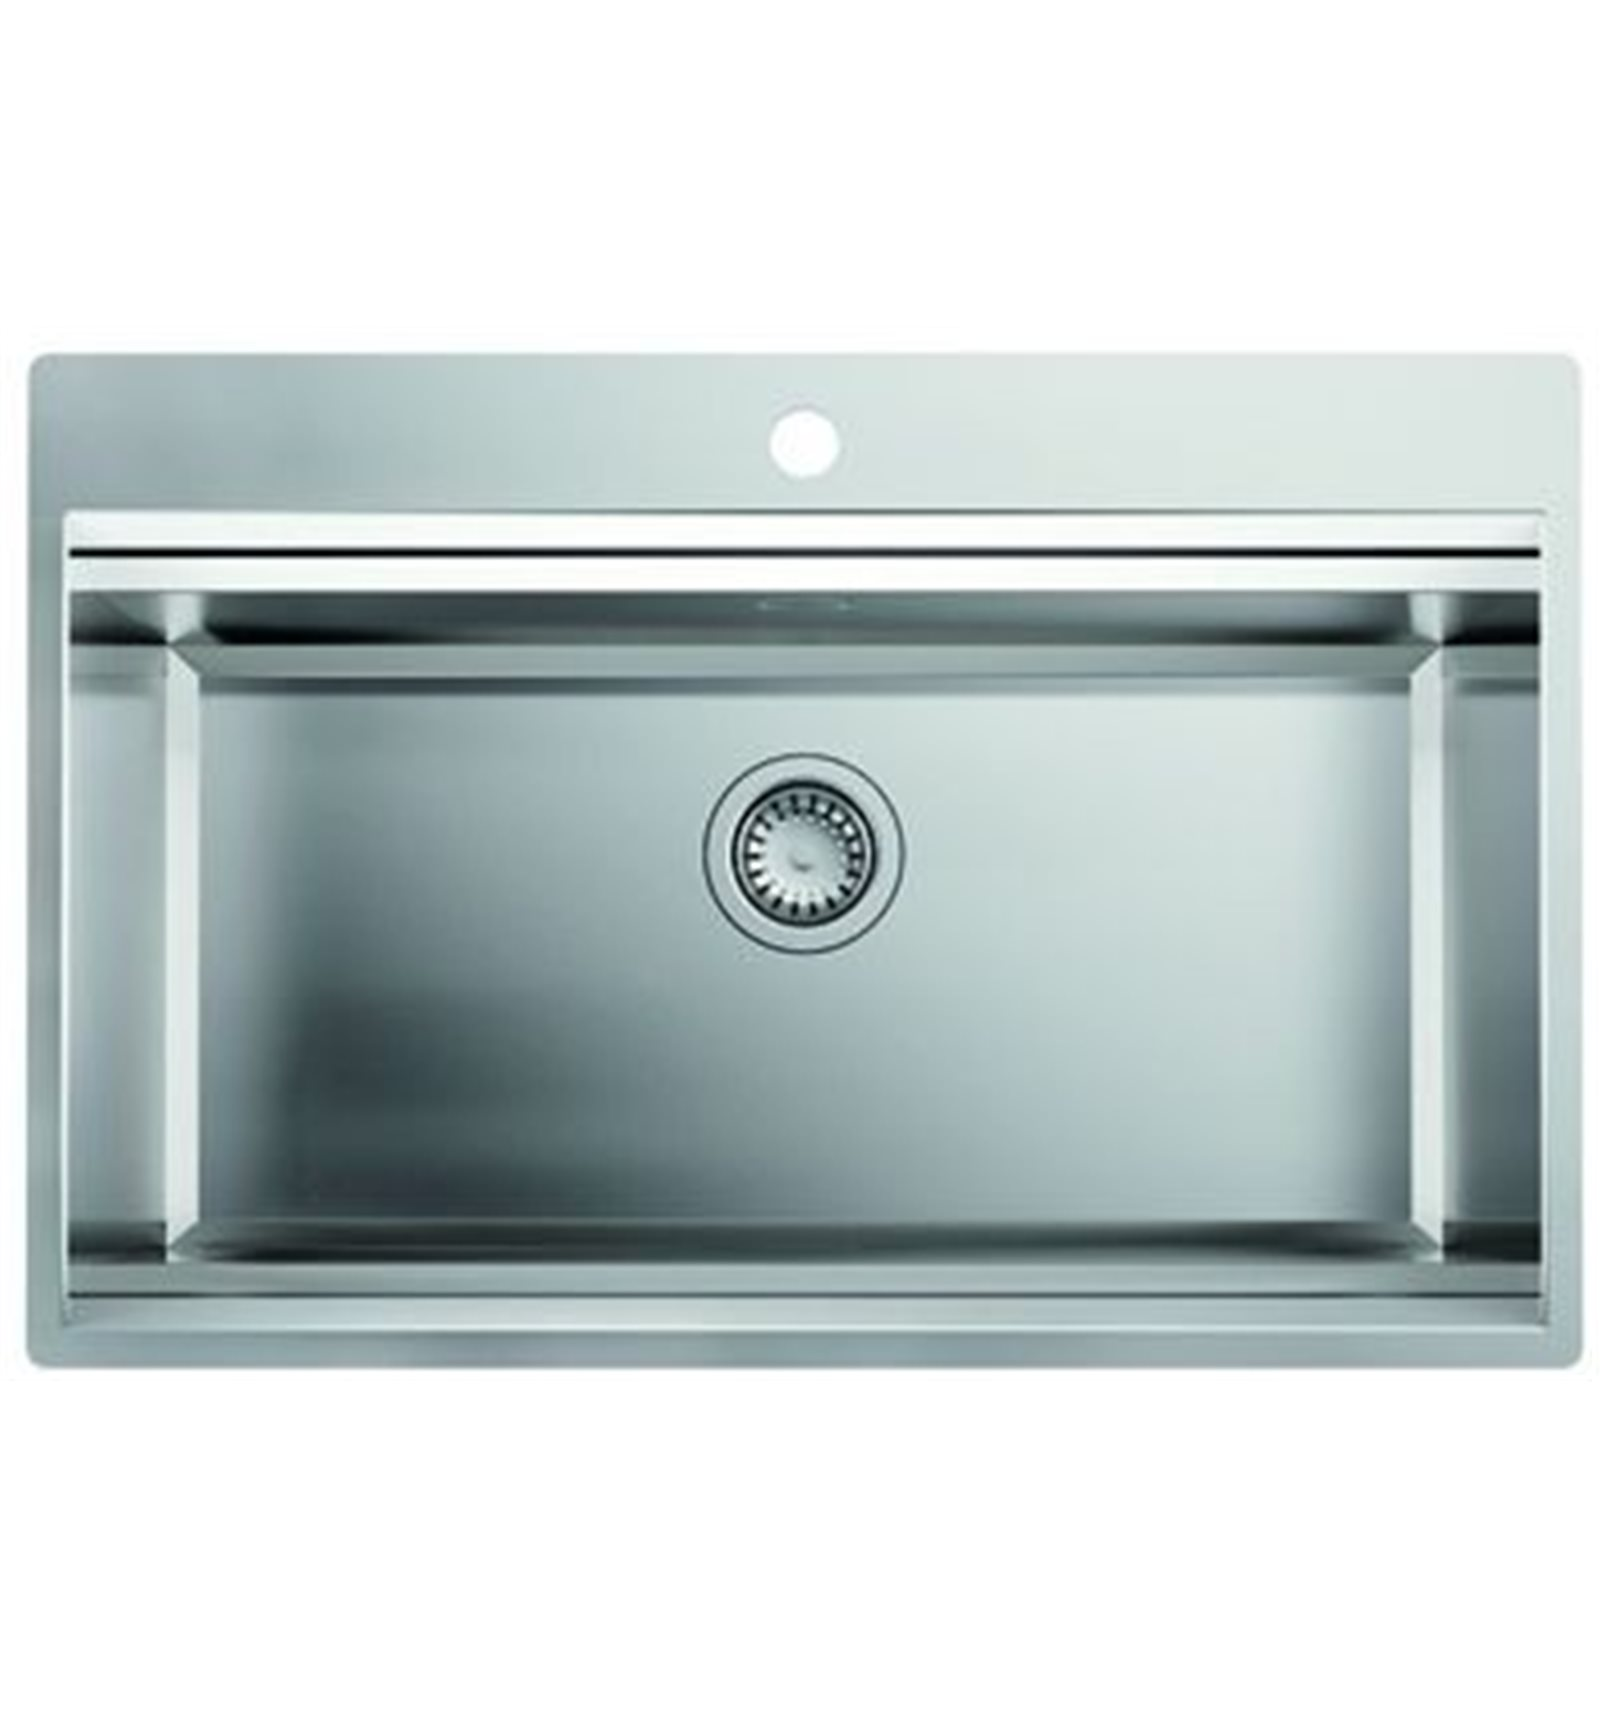 ARTINOX LAYER BRP 74 Stainless Steel Kitchen sink